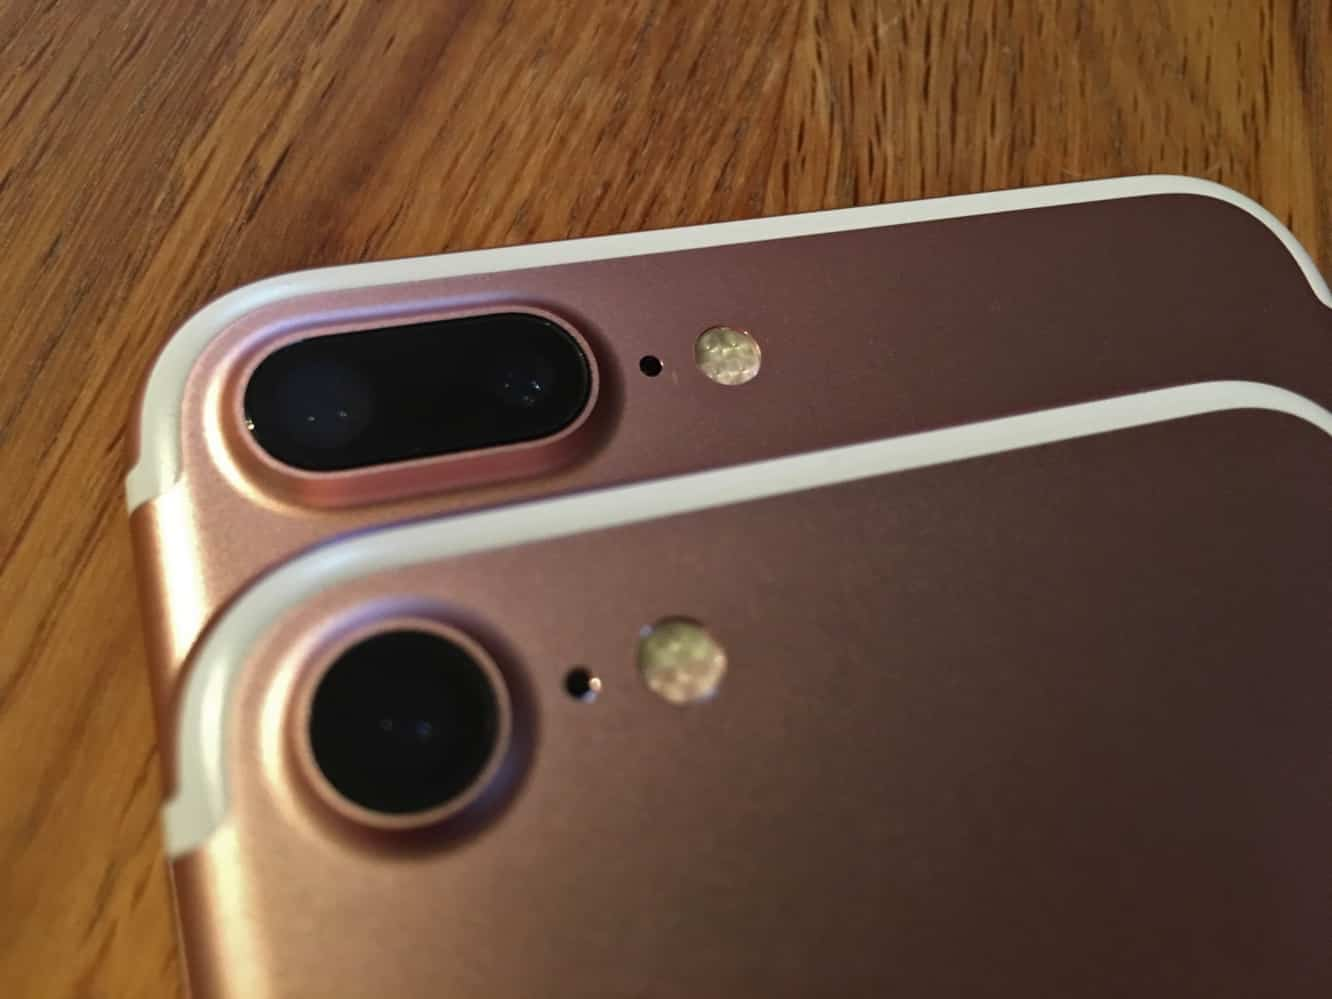 Report: Apple exploring possibility of manufacturing iPhones in U.S.